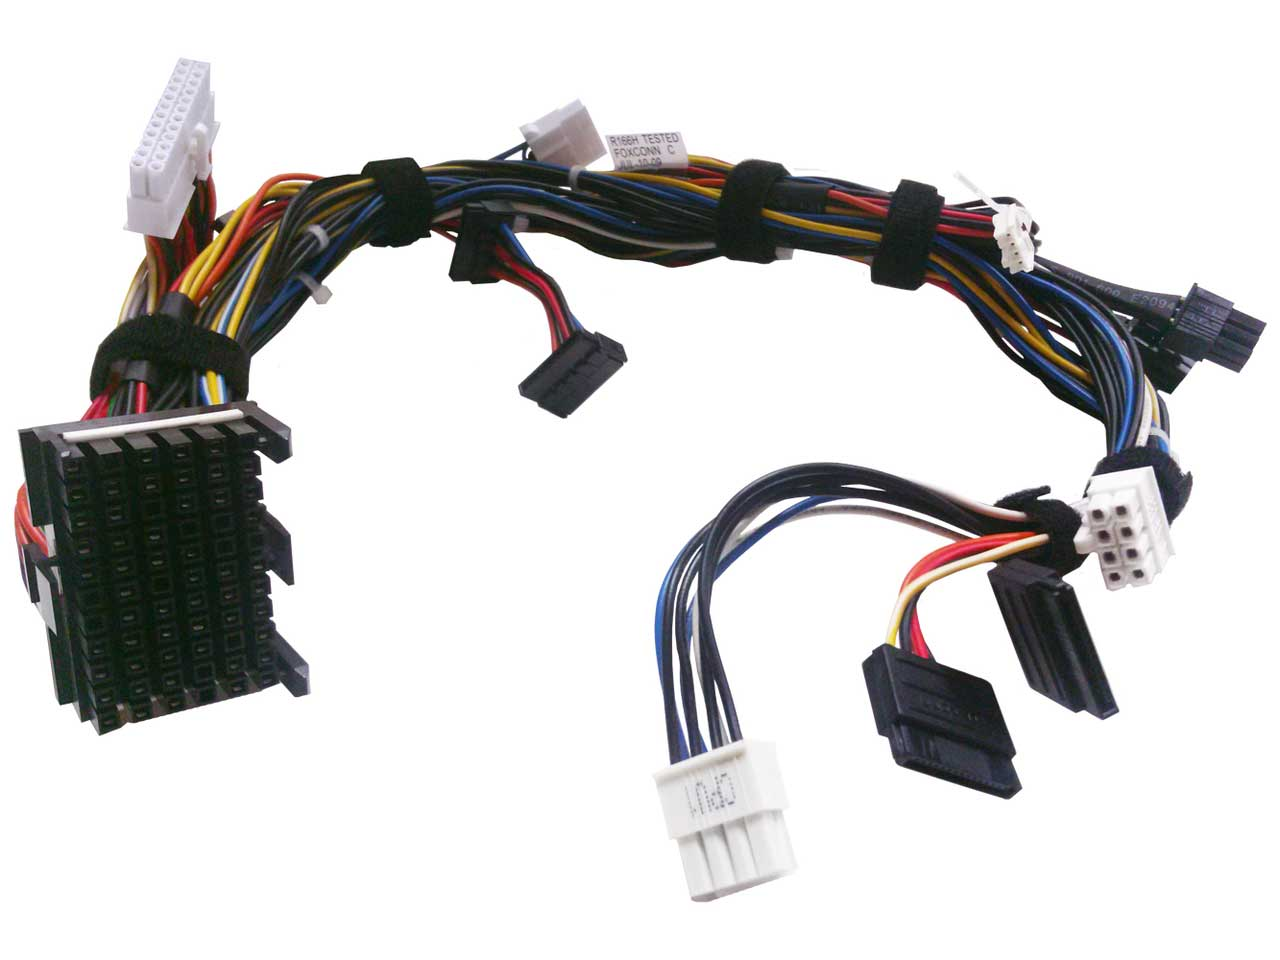 dell r166h power supply wiring harness rh velocitytechsolutions com Power Supply Pinout Testing PC Power Supply Pin Out